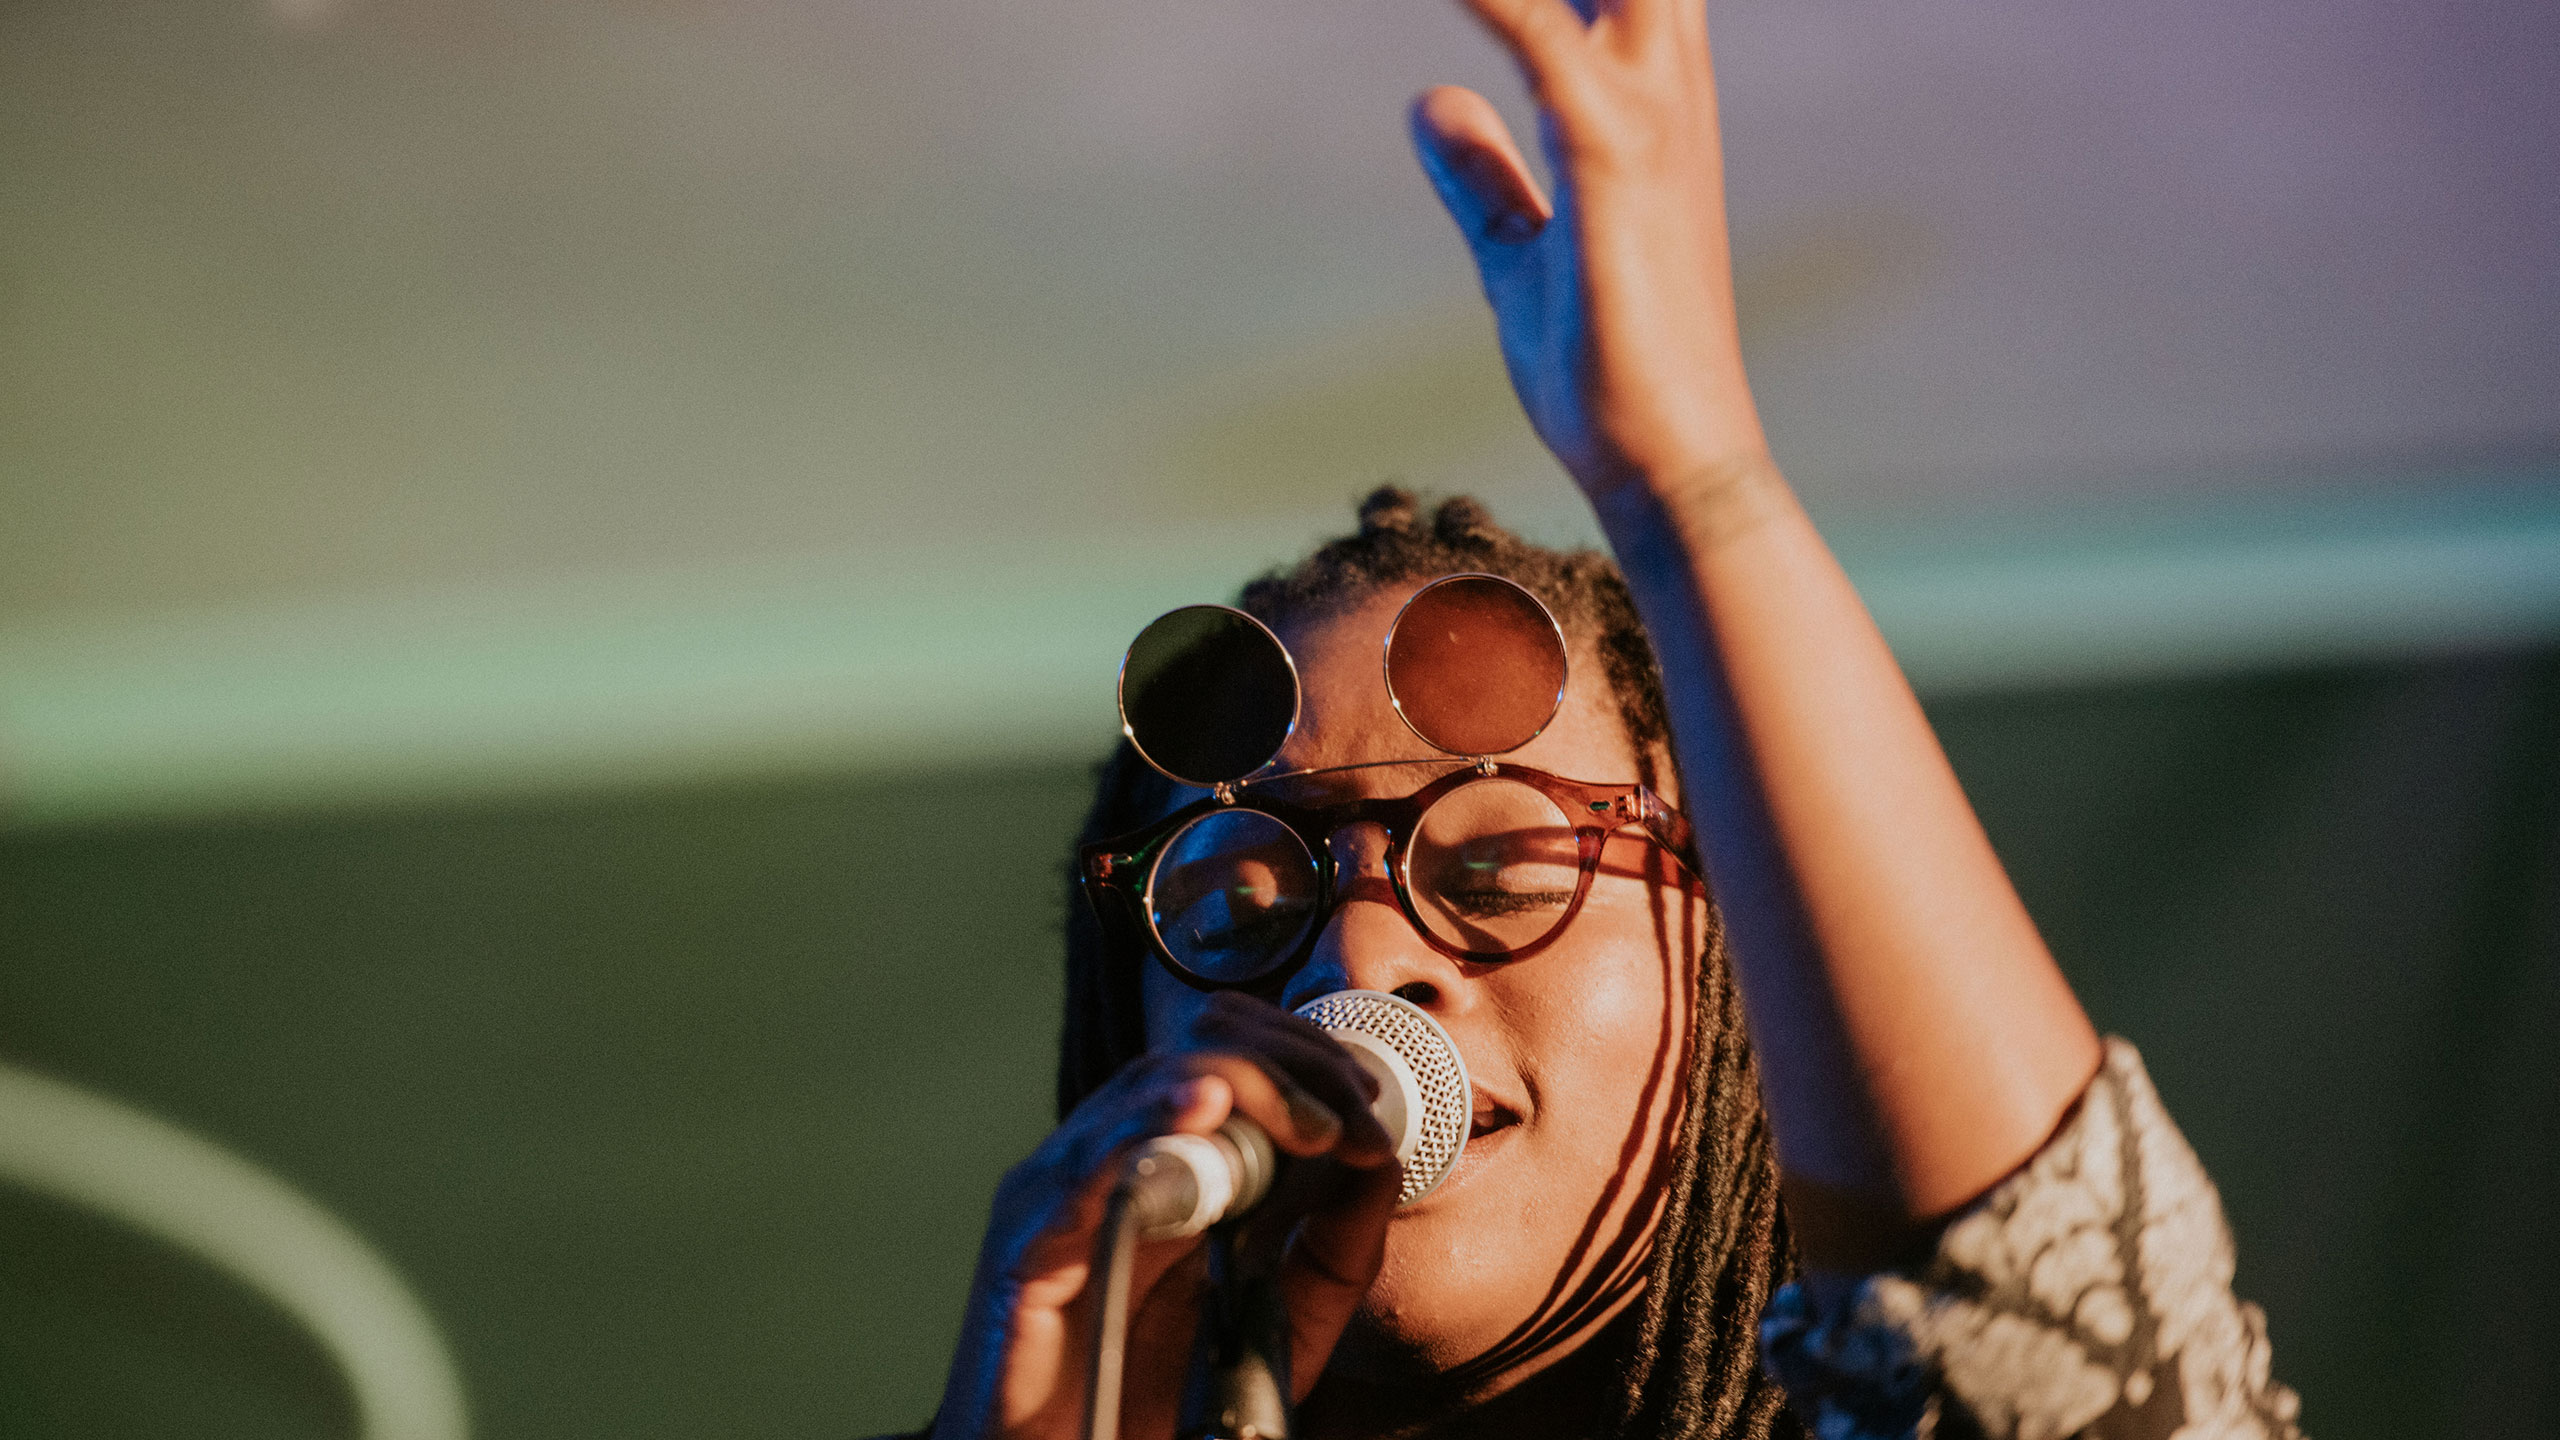 Speech Debelle sings into the microphone in her right hand and raises her left hand at PRS for Music Presents